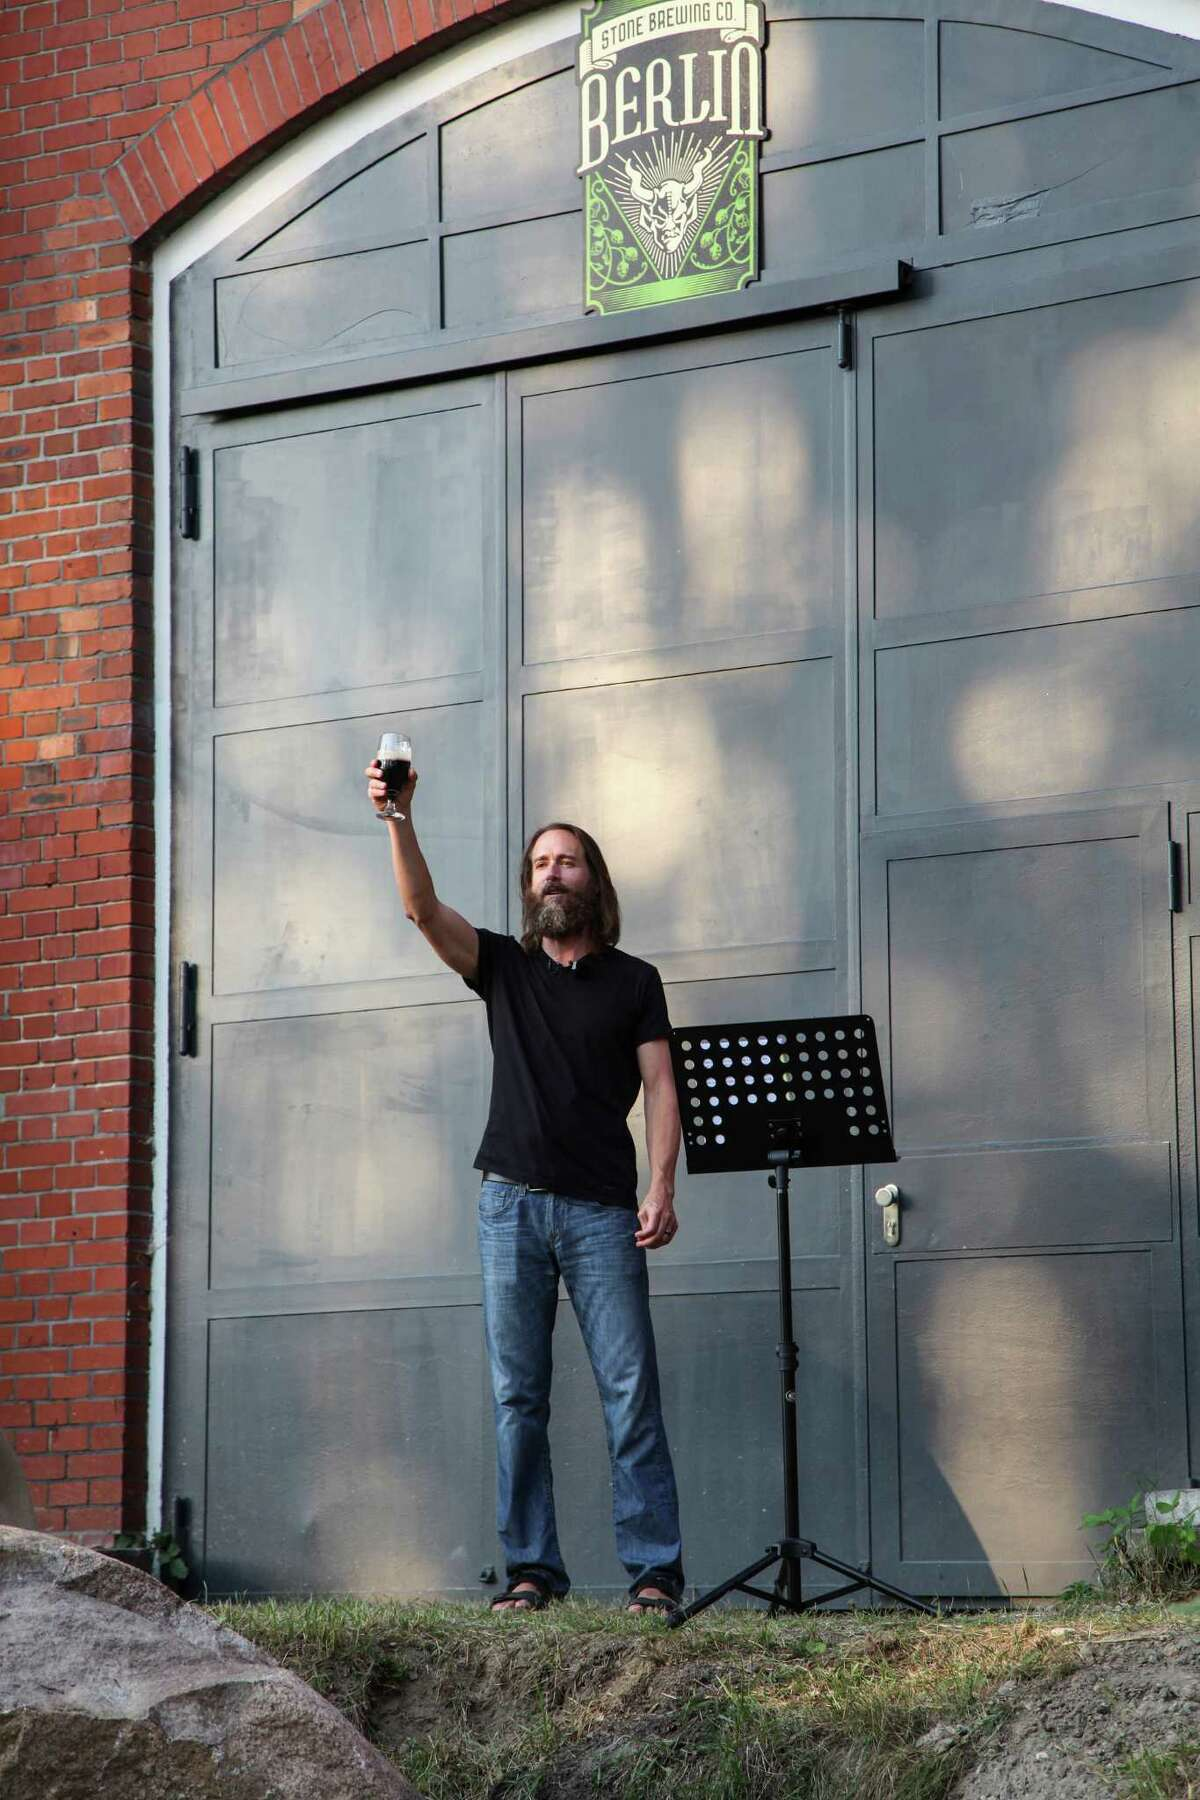 Stone Brewing Co. CEO and co-founder Greg Koch addresses crowd outside what will be the main hall of Stone Brewing Co.'s first European brewery. Shown here on July 19, 2014, when the project was formally announced.